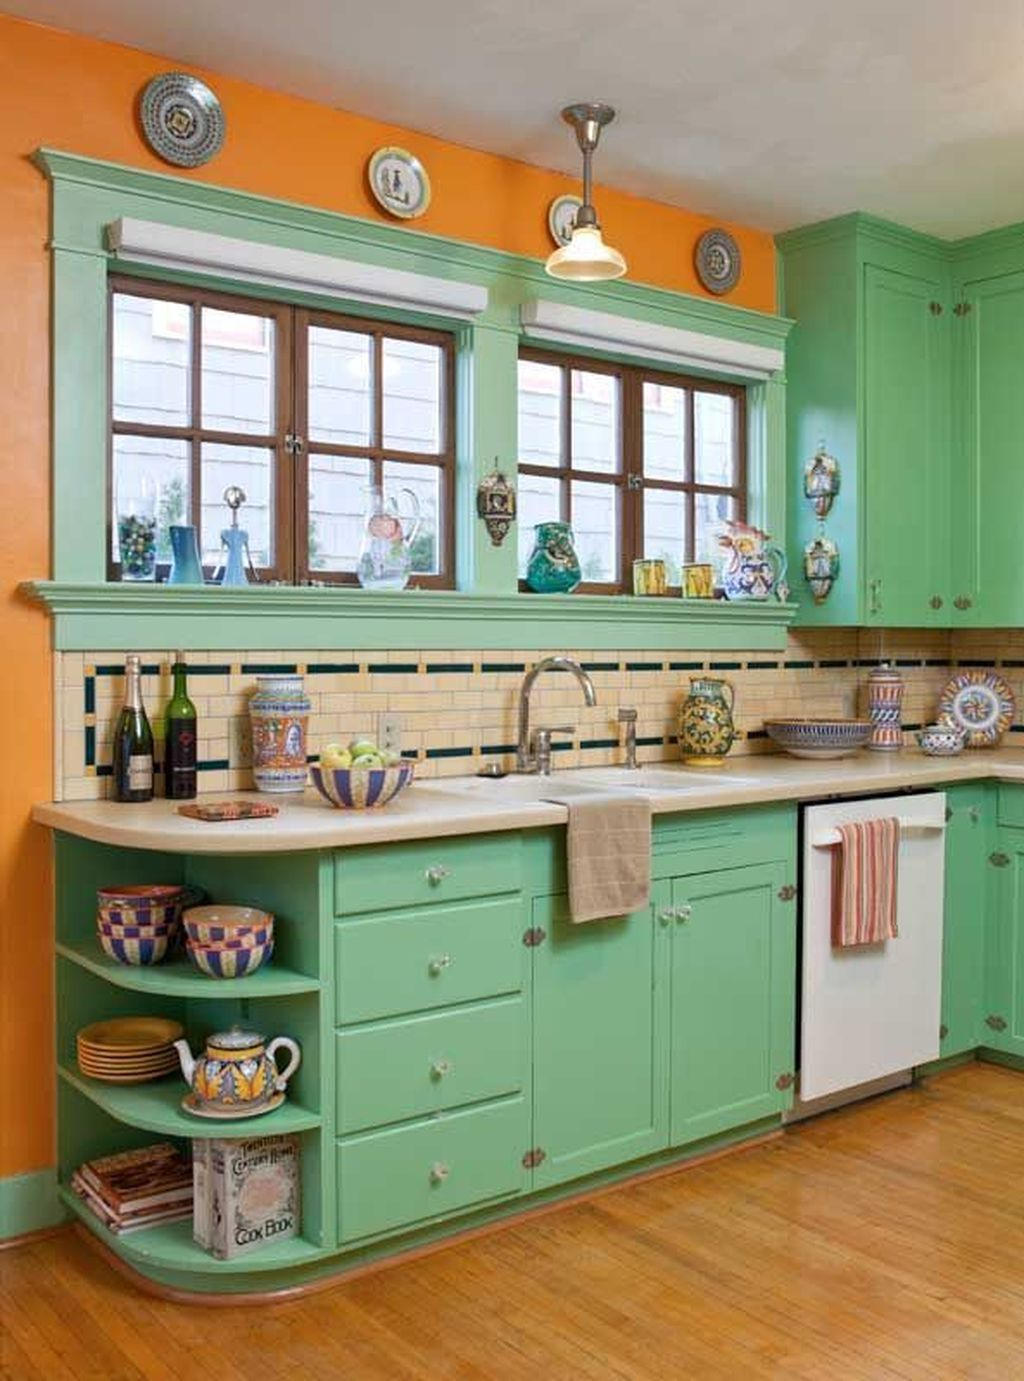 42 Extraordinary Colorful Kitchen Design Ideas For Exciting